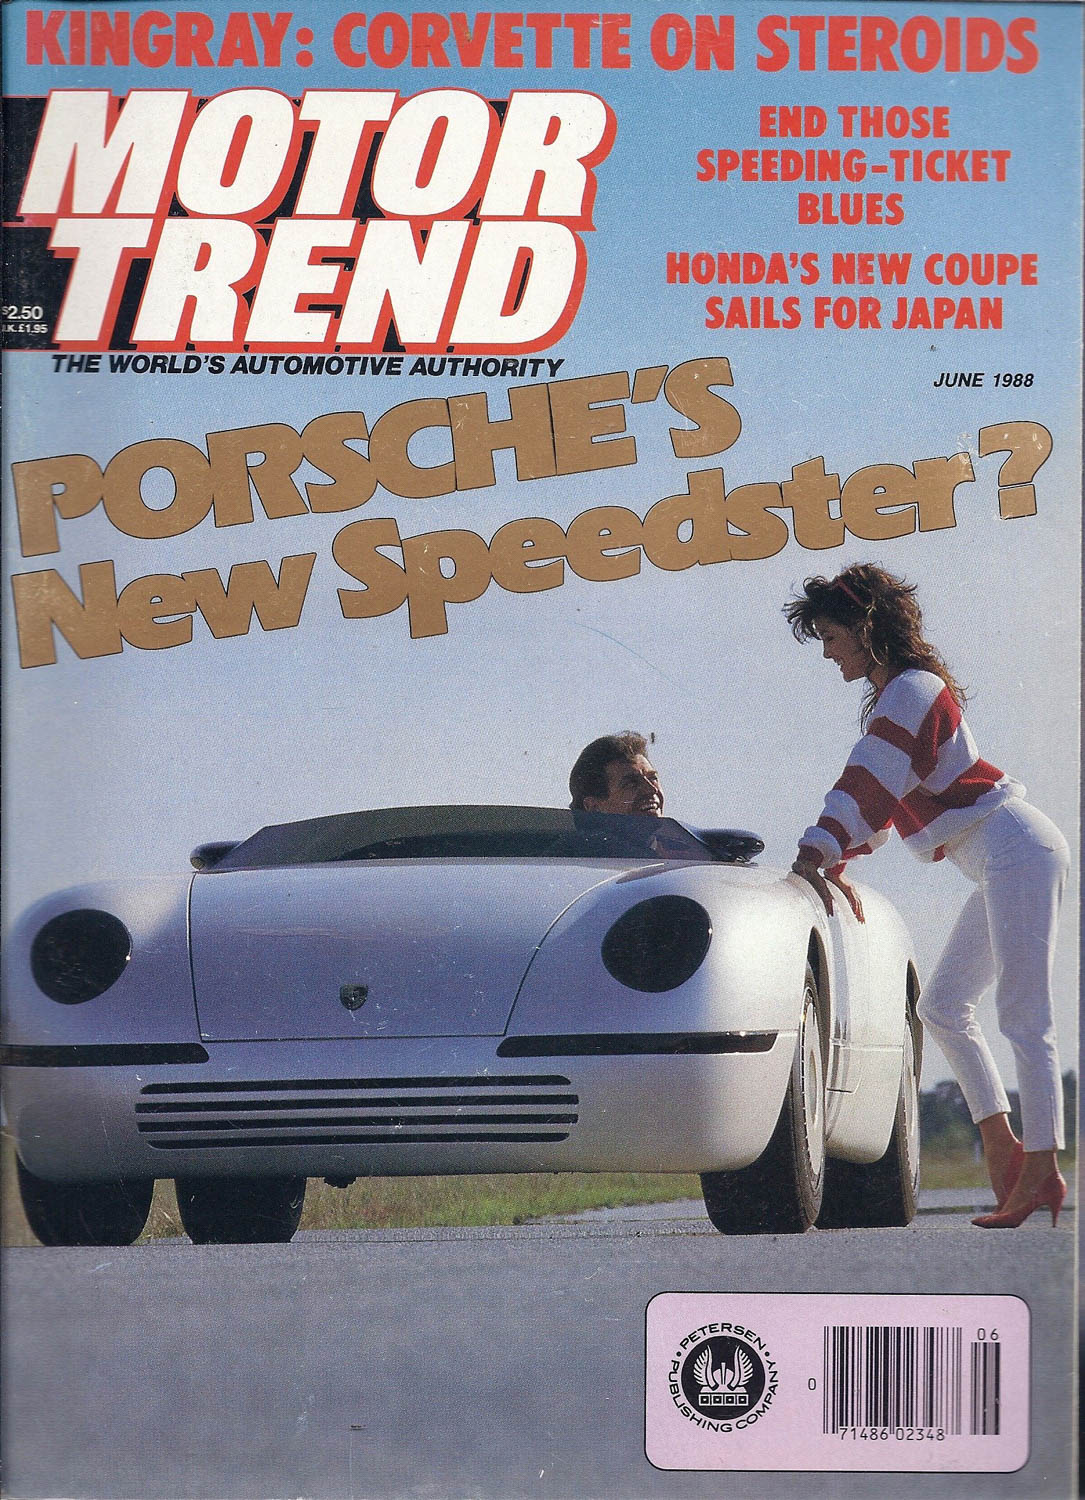 1988 Motor Trend cover